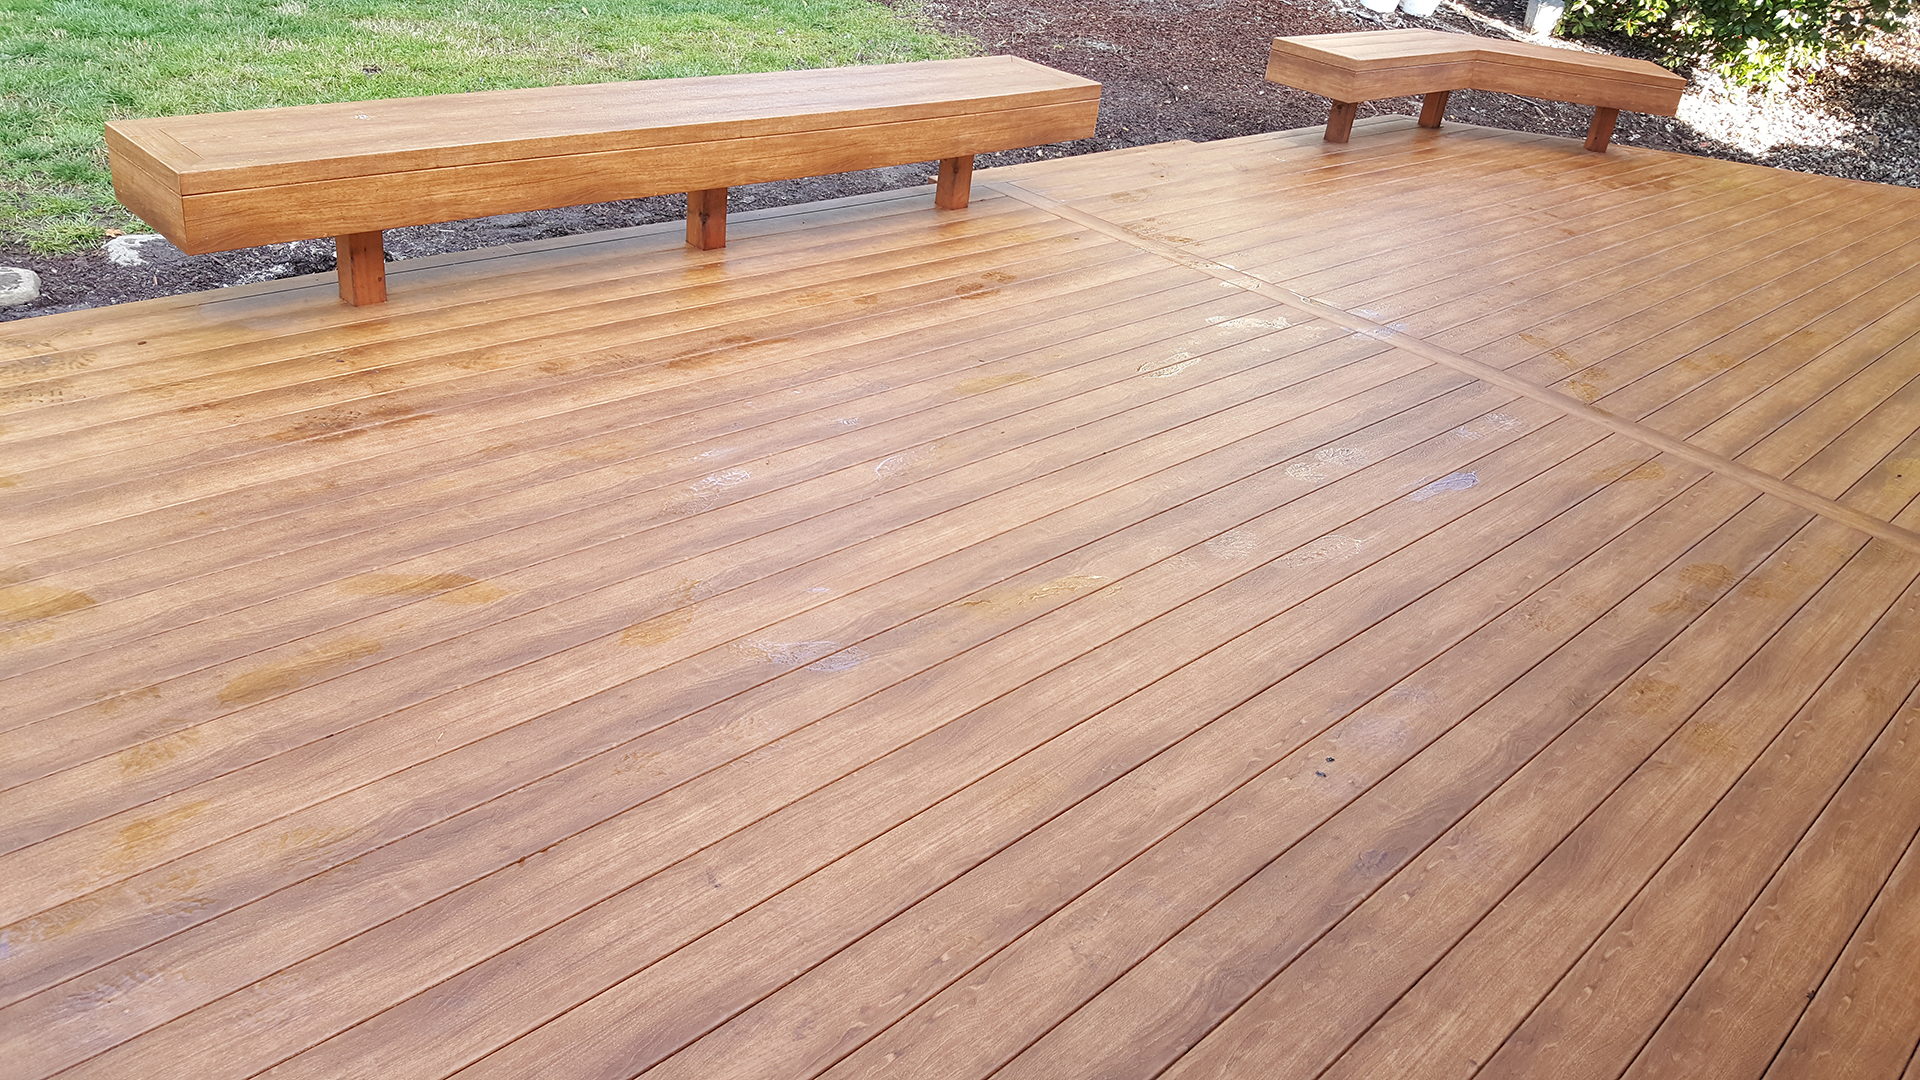 Zuri Walnut Deck In Santa Rosa Before And After Pics